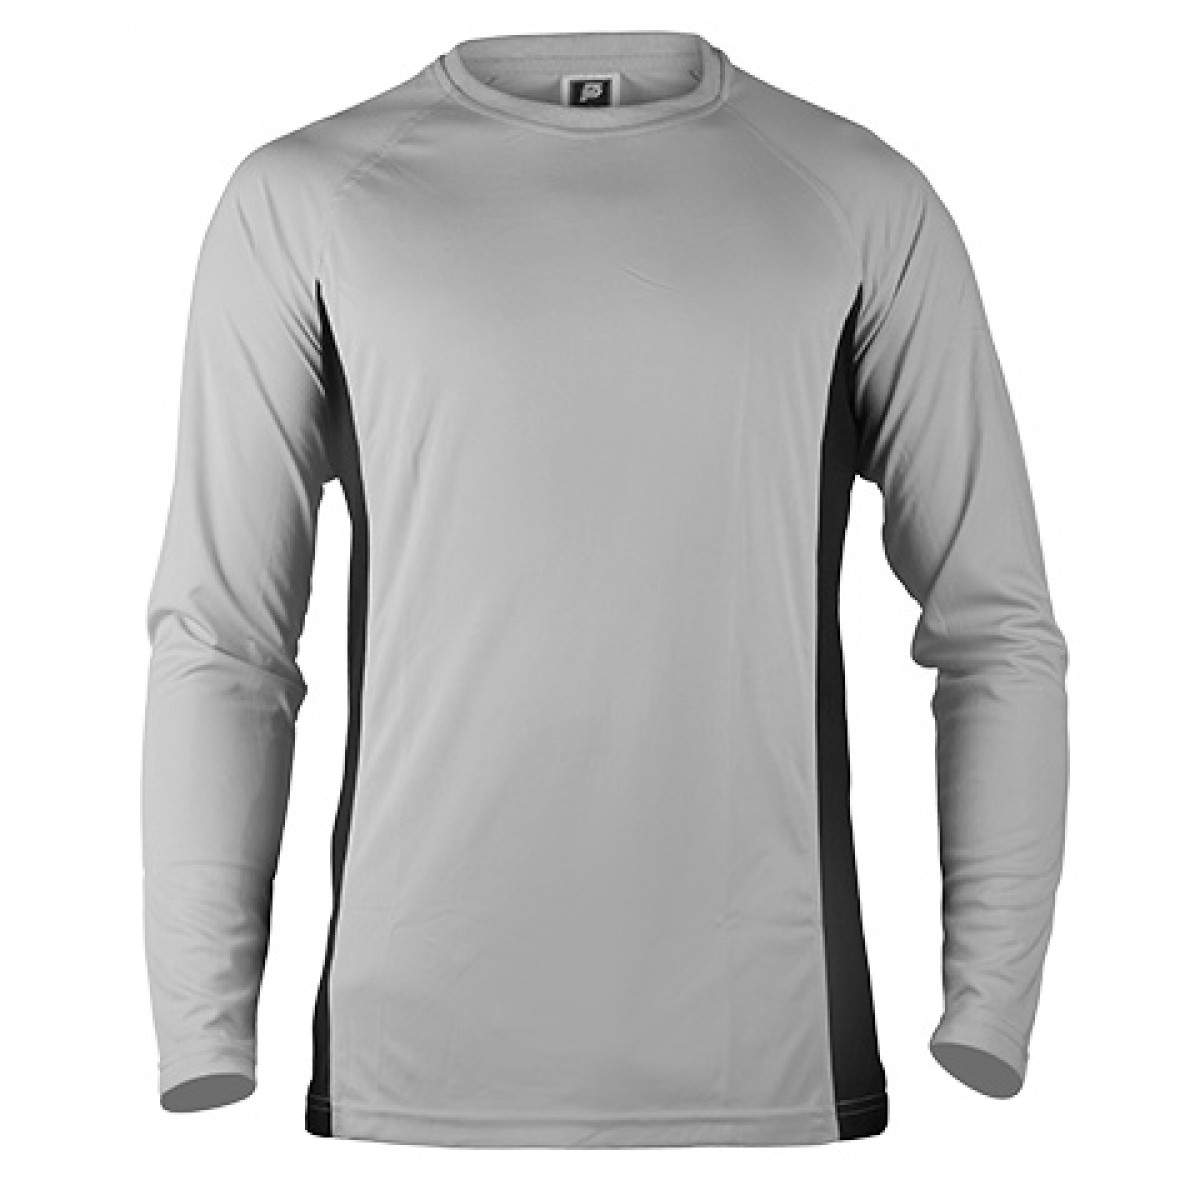 Long Sleeves Performance With Side Insert-Gray/Black-2XL